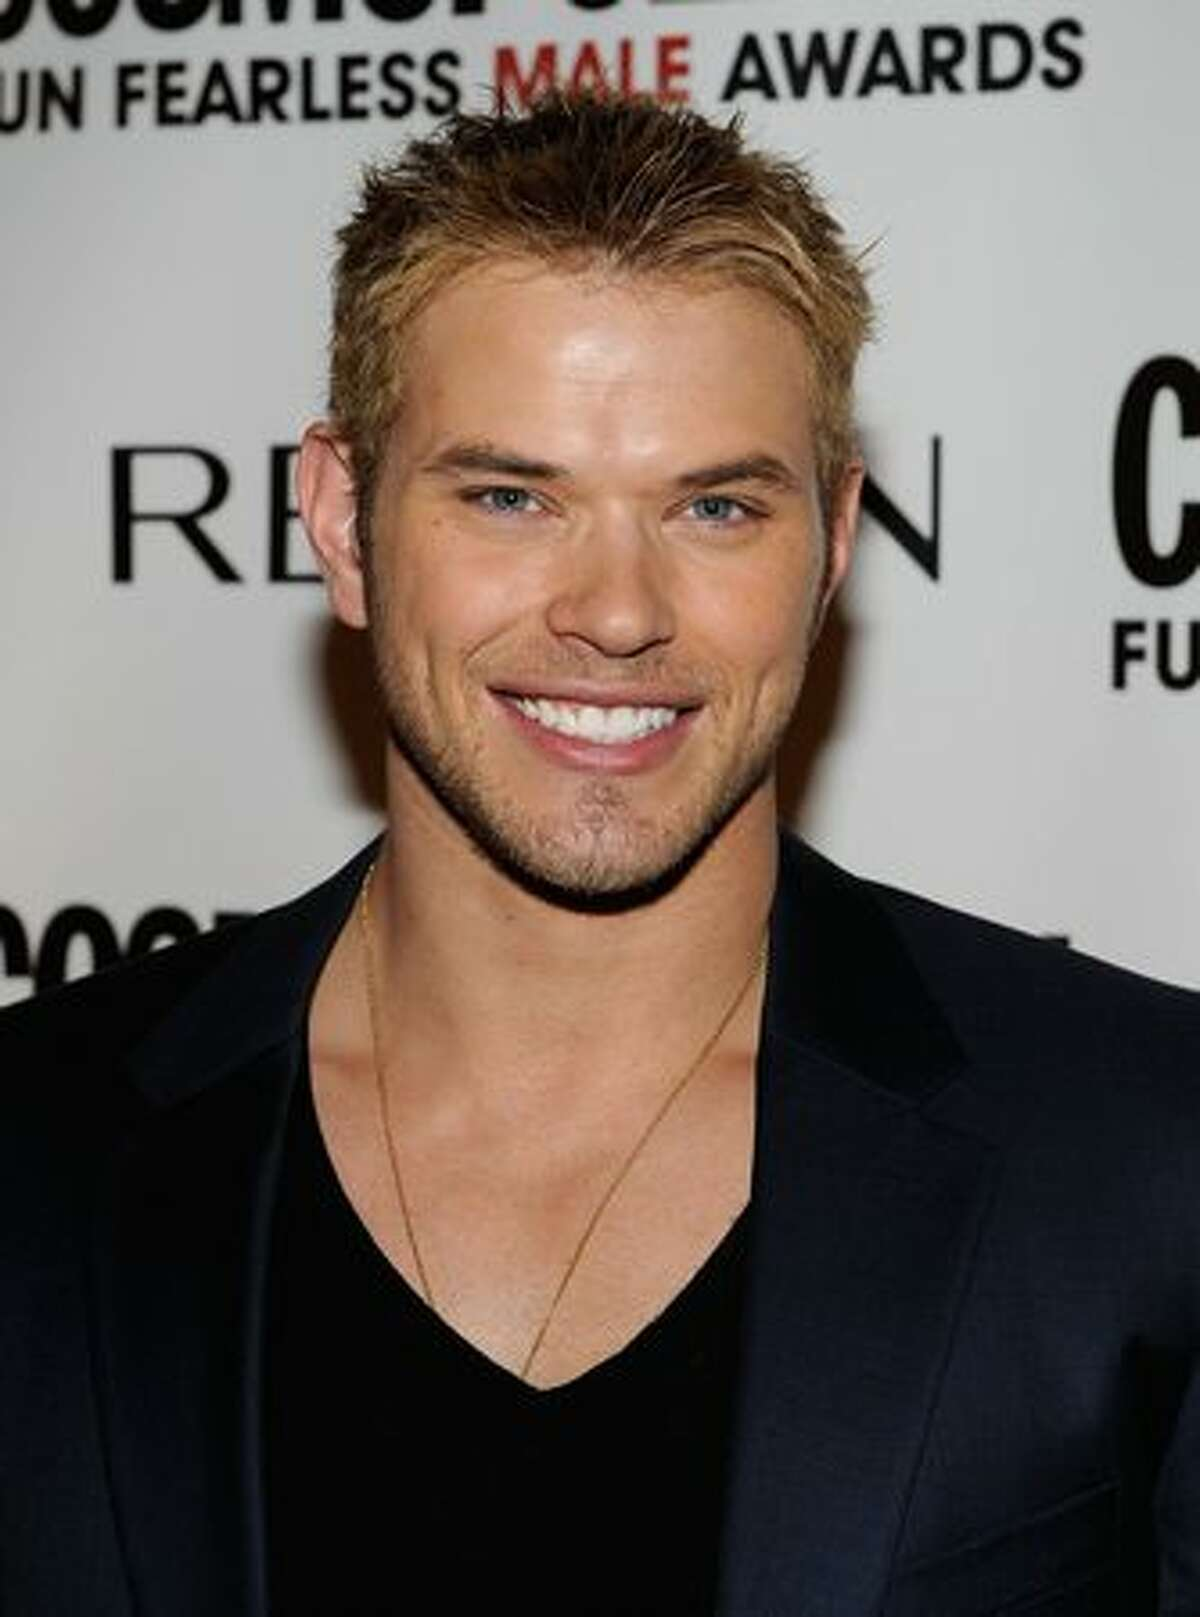 Actor Kellan Lutz arrives at Cosmopolitan magazine's Fun Fearless Males of 2010 at The Mandarin Oriental Hotel in New York on Monday, March 1, 2010.